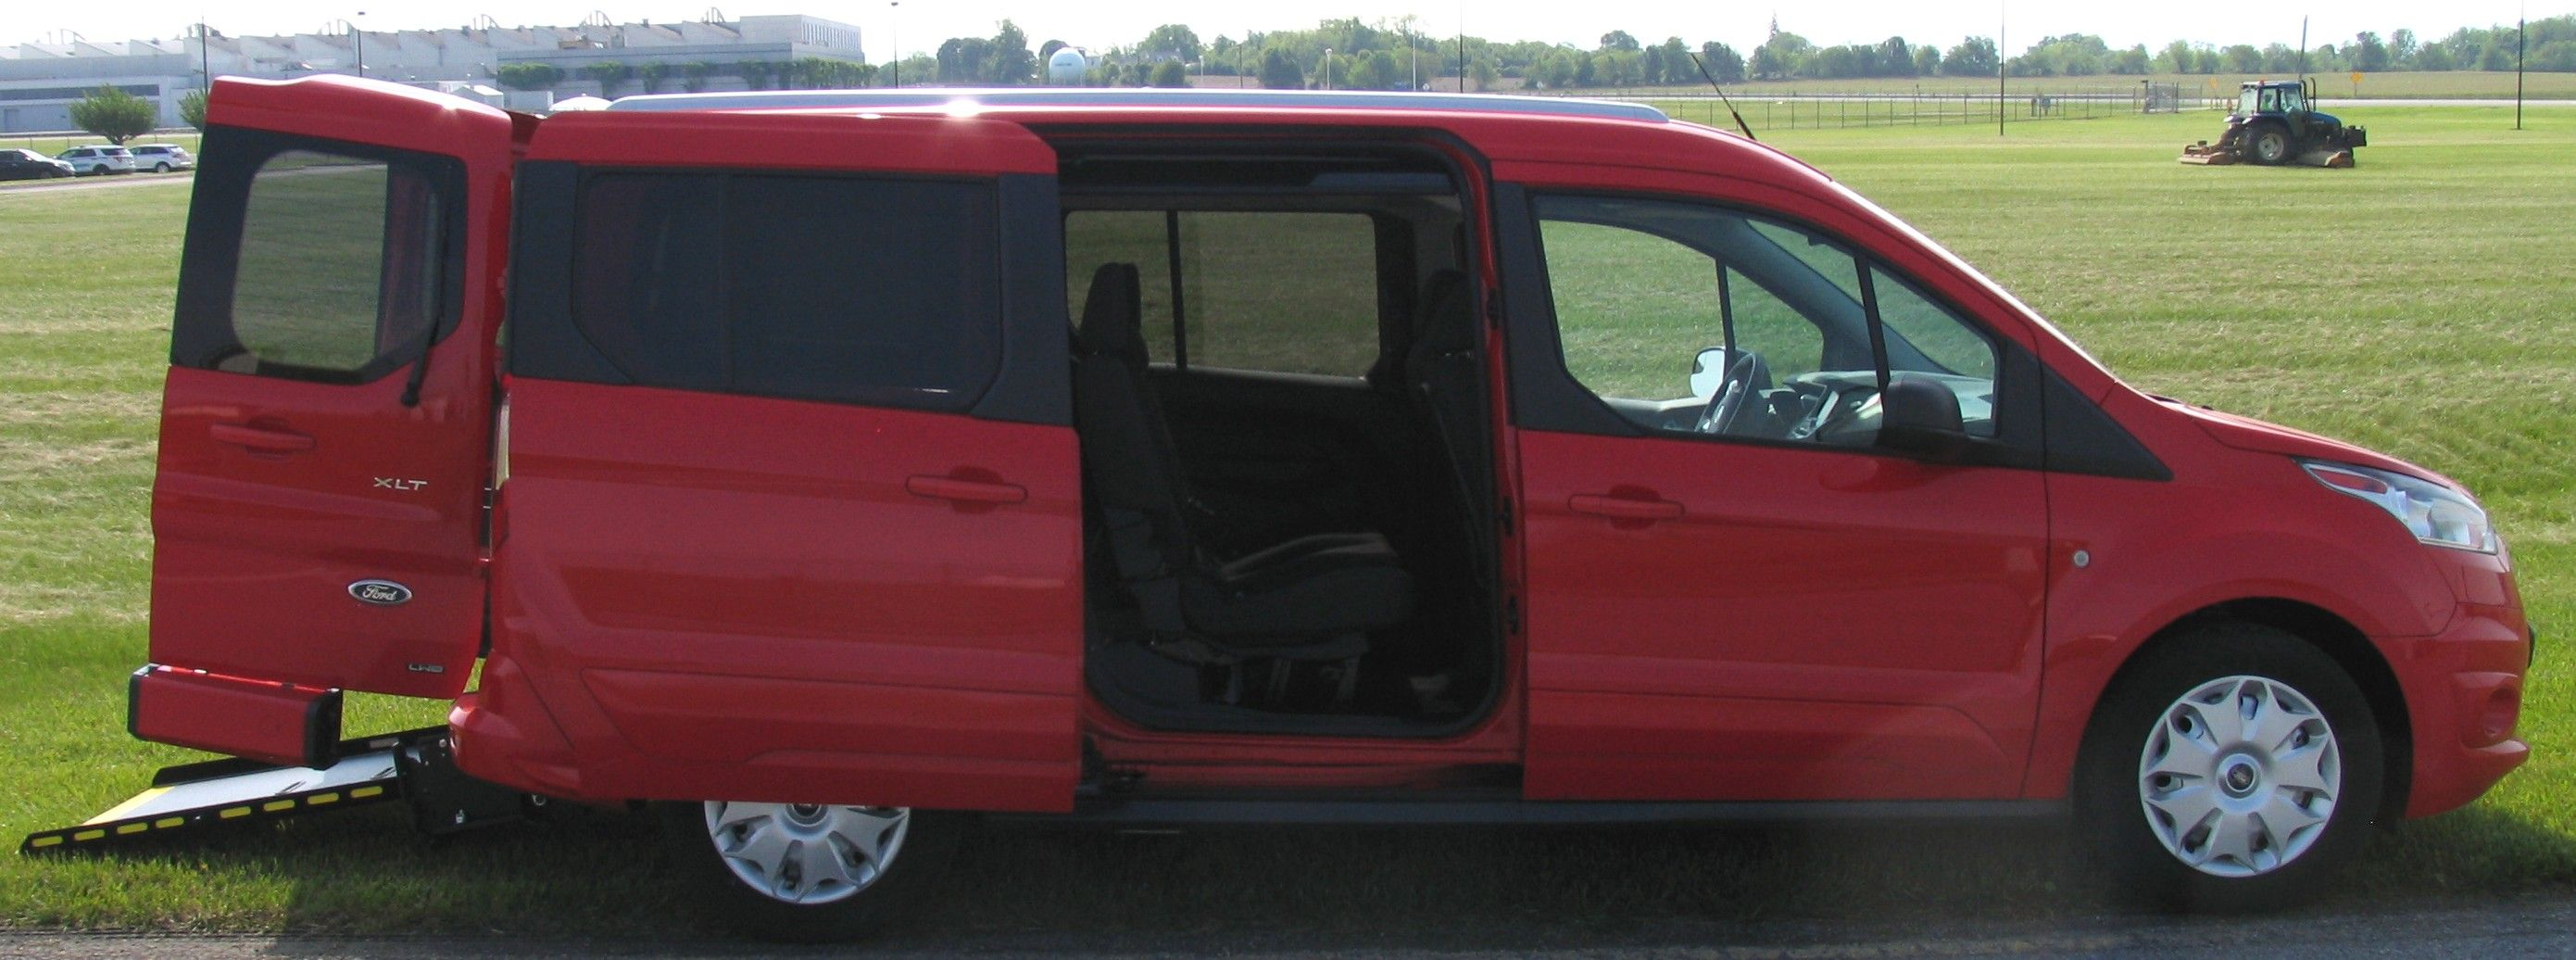 5fcee02909 Wheelchair Accessible Vans For Sale - Customizers Quality Conversions